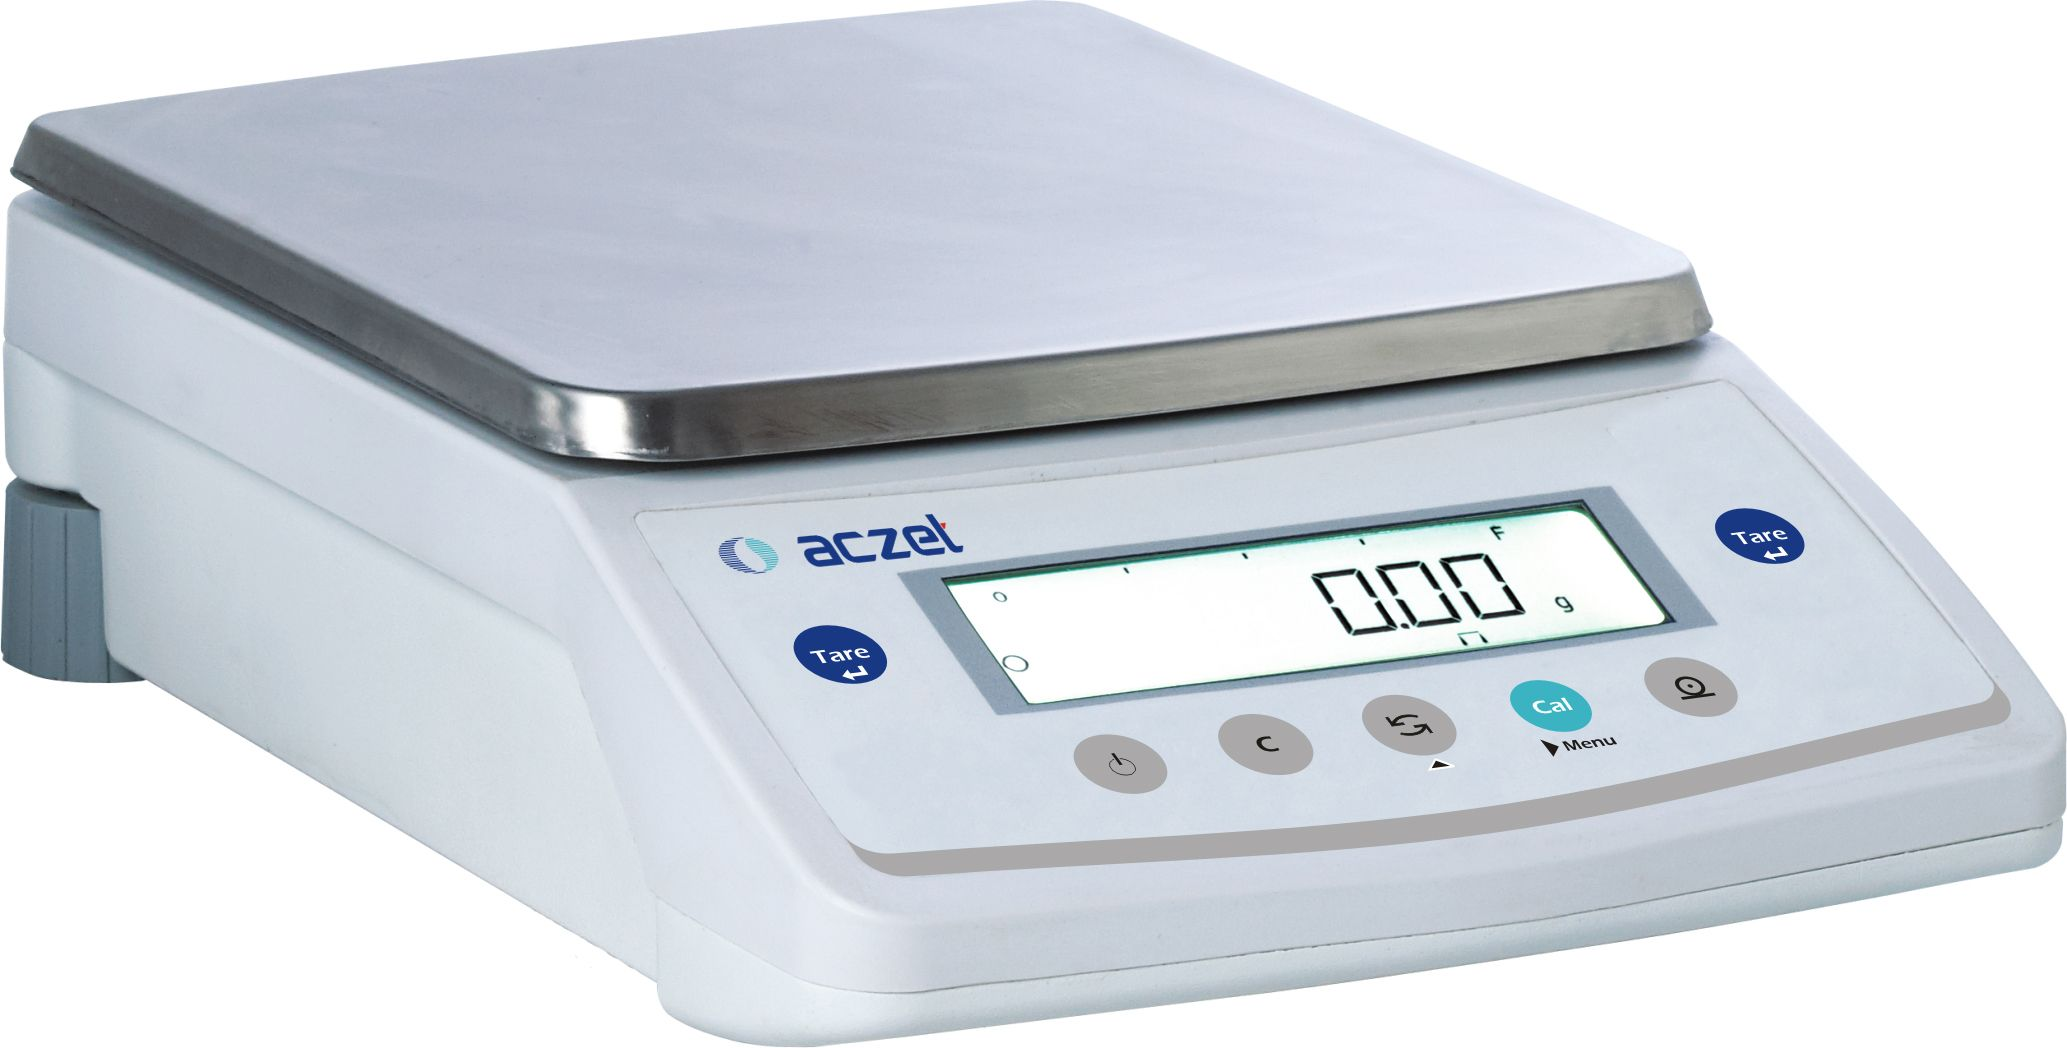 ACZET CY 6101C SERIES PRECISION BALANCE with LCD DISPLAY